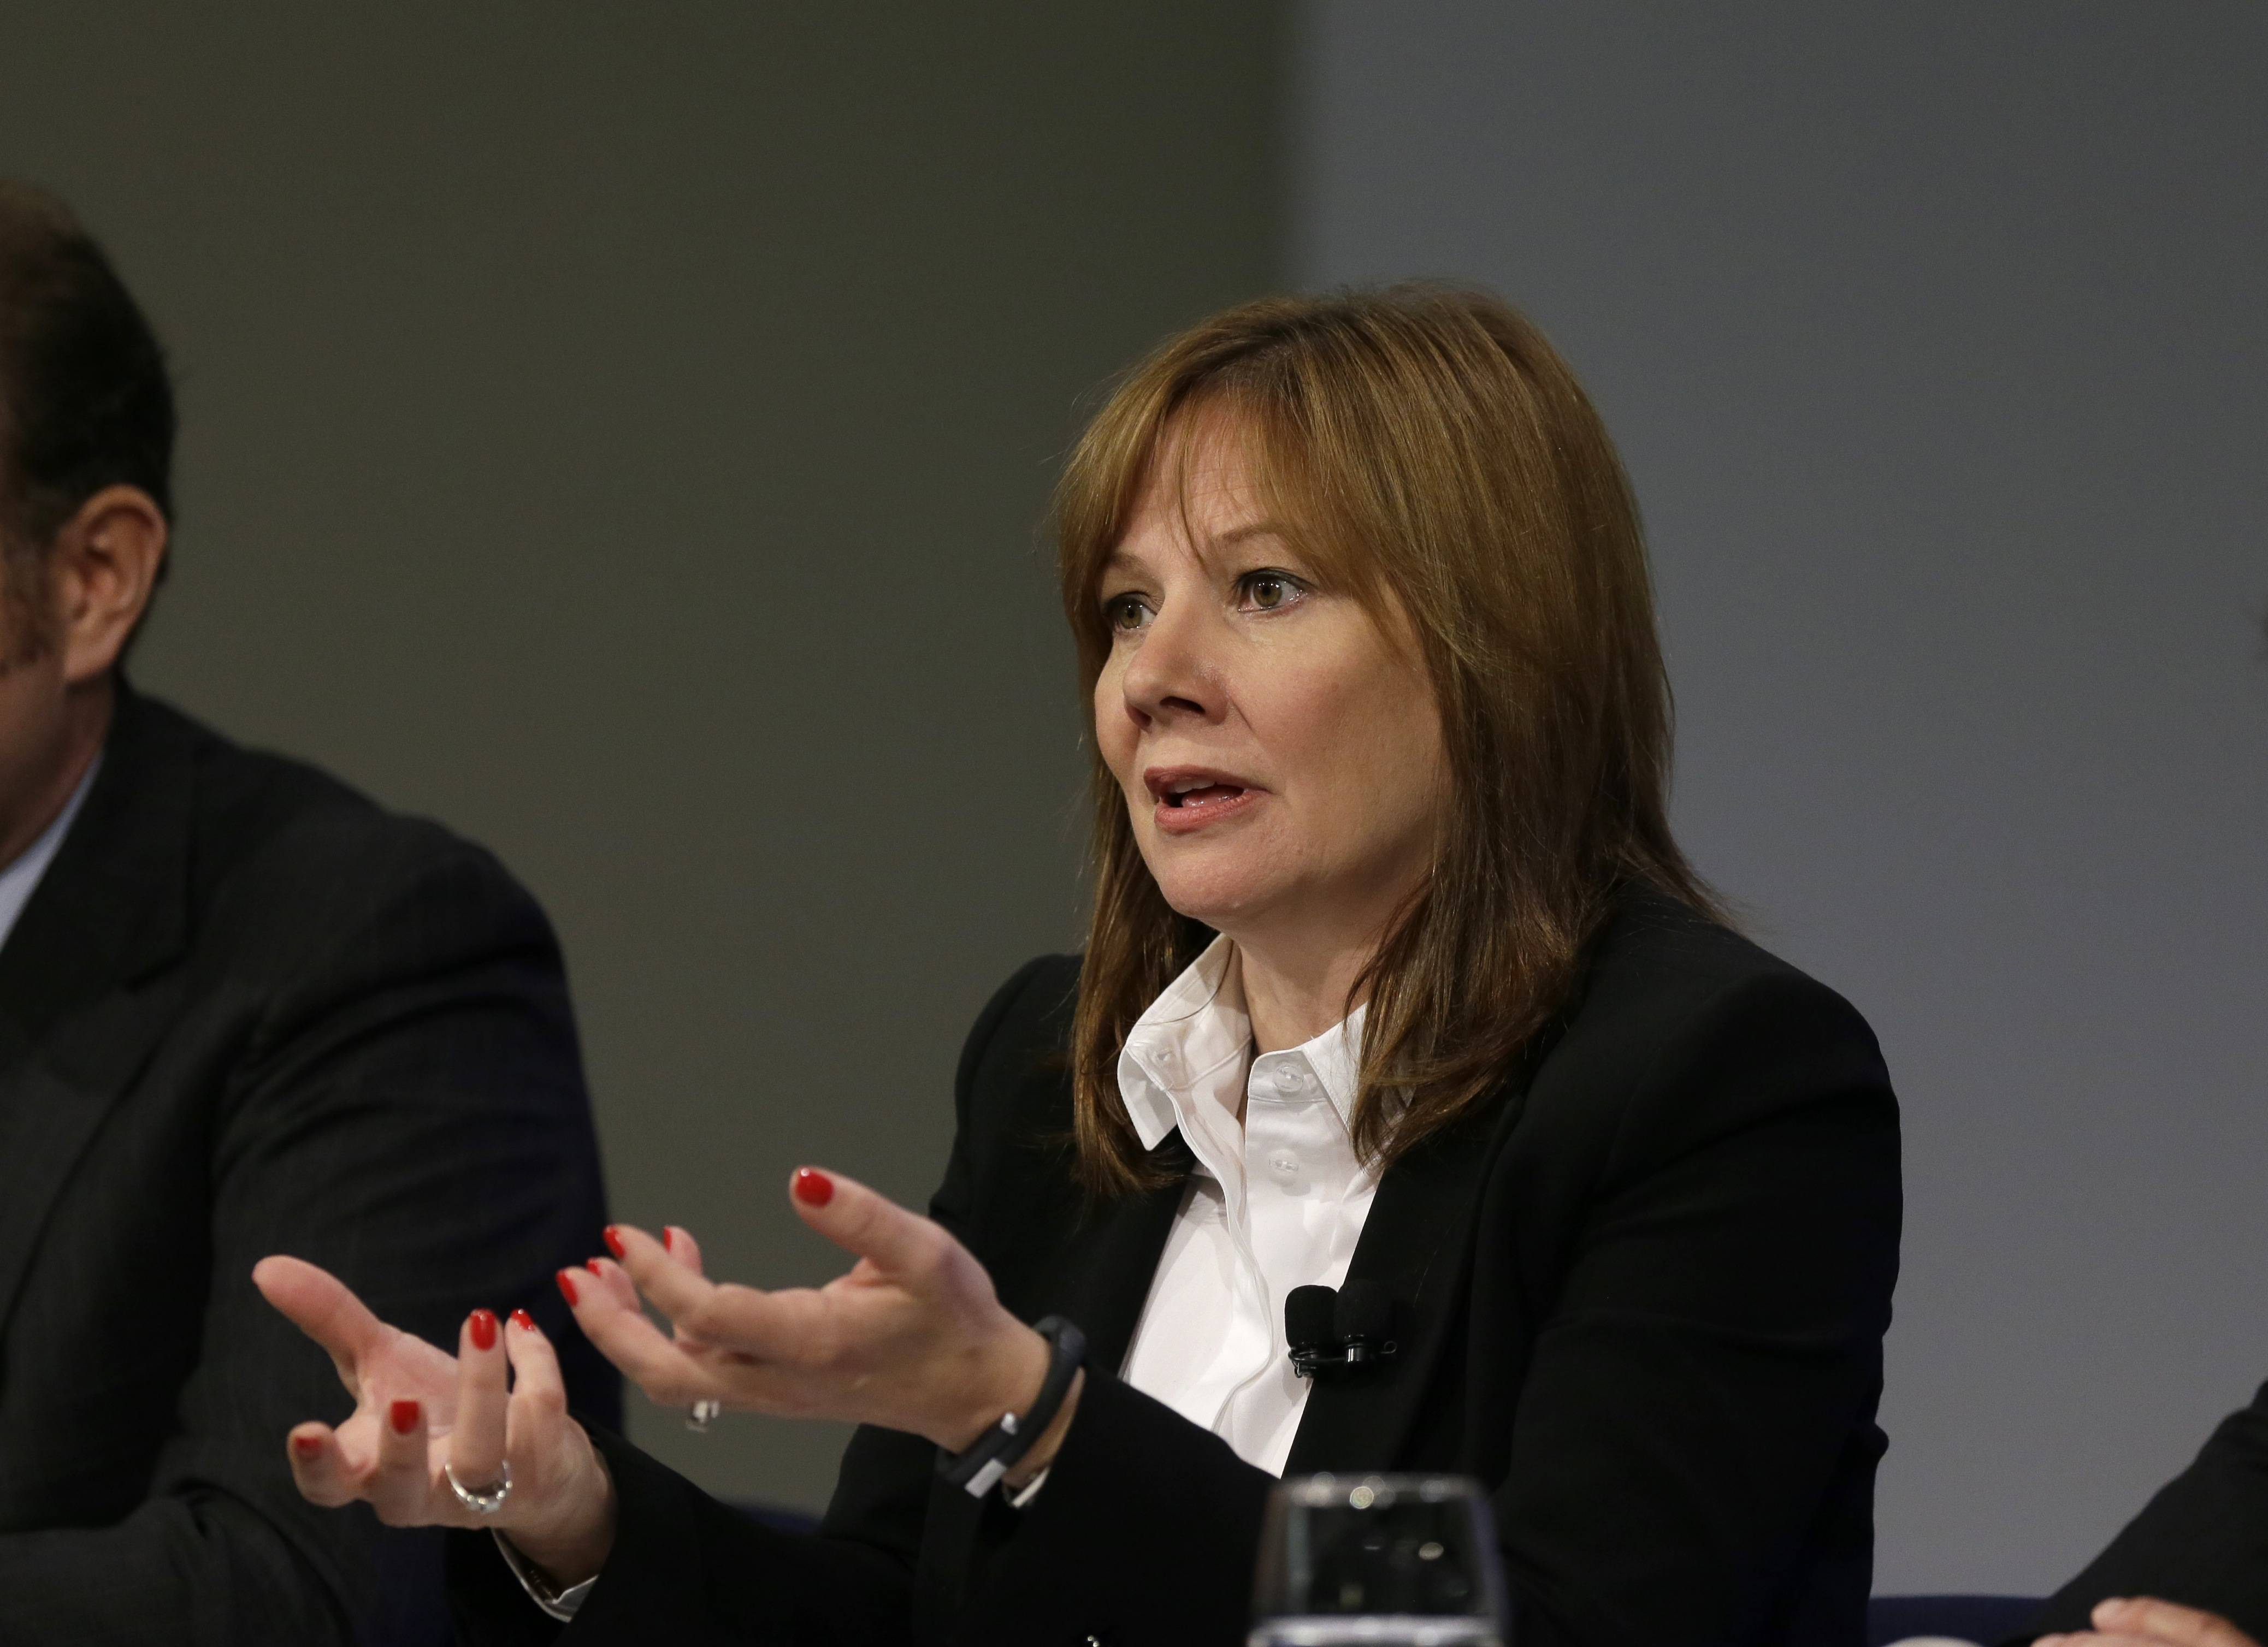 General Motors CEO Mary Barra, seen during a press conference at the General Motors Technical Center in Warren, Mich., Thursday, said 15 employees — many of them senior legal and engineering executives — have been forced out for failing to disclose defective ignition switches, which the company links to 13 deaths and 54 crashes in which the air bags didn't deploy.